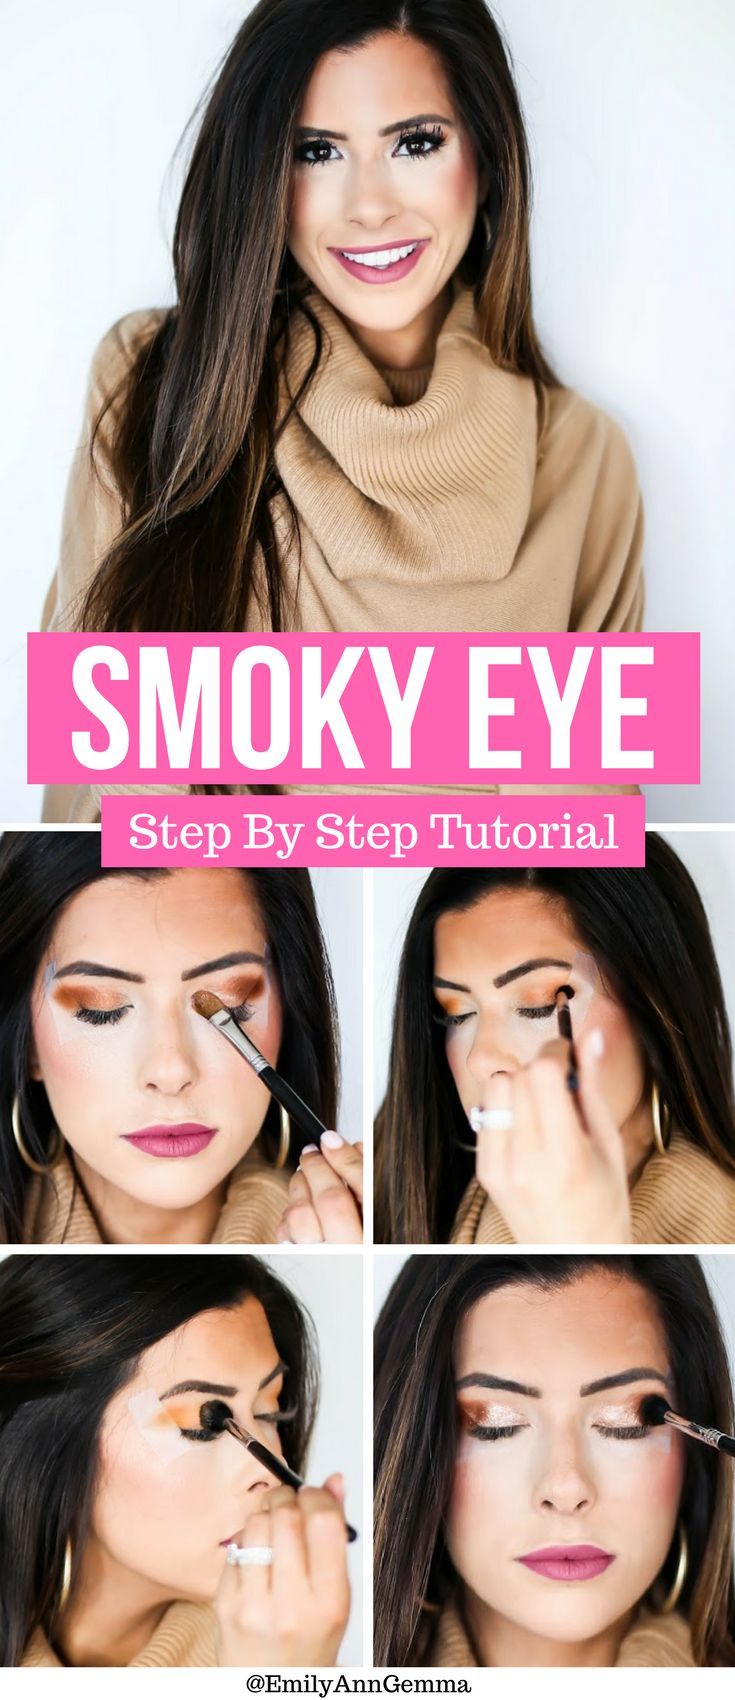 Easy to Follow Step by Step Tutorial. Smoky eye tutorial, makeup tutorial, how t...